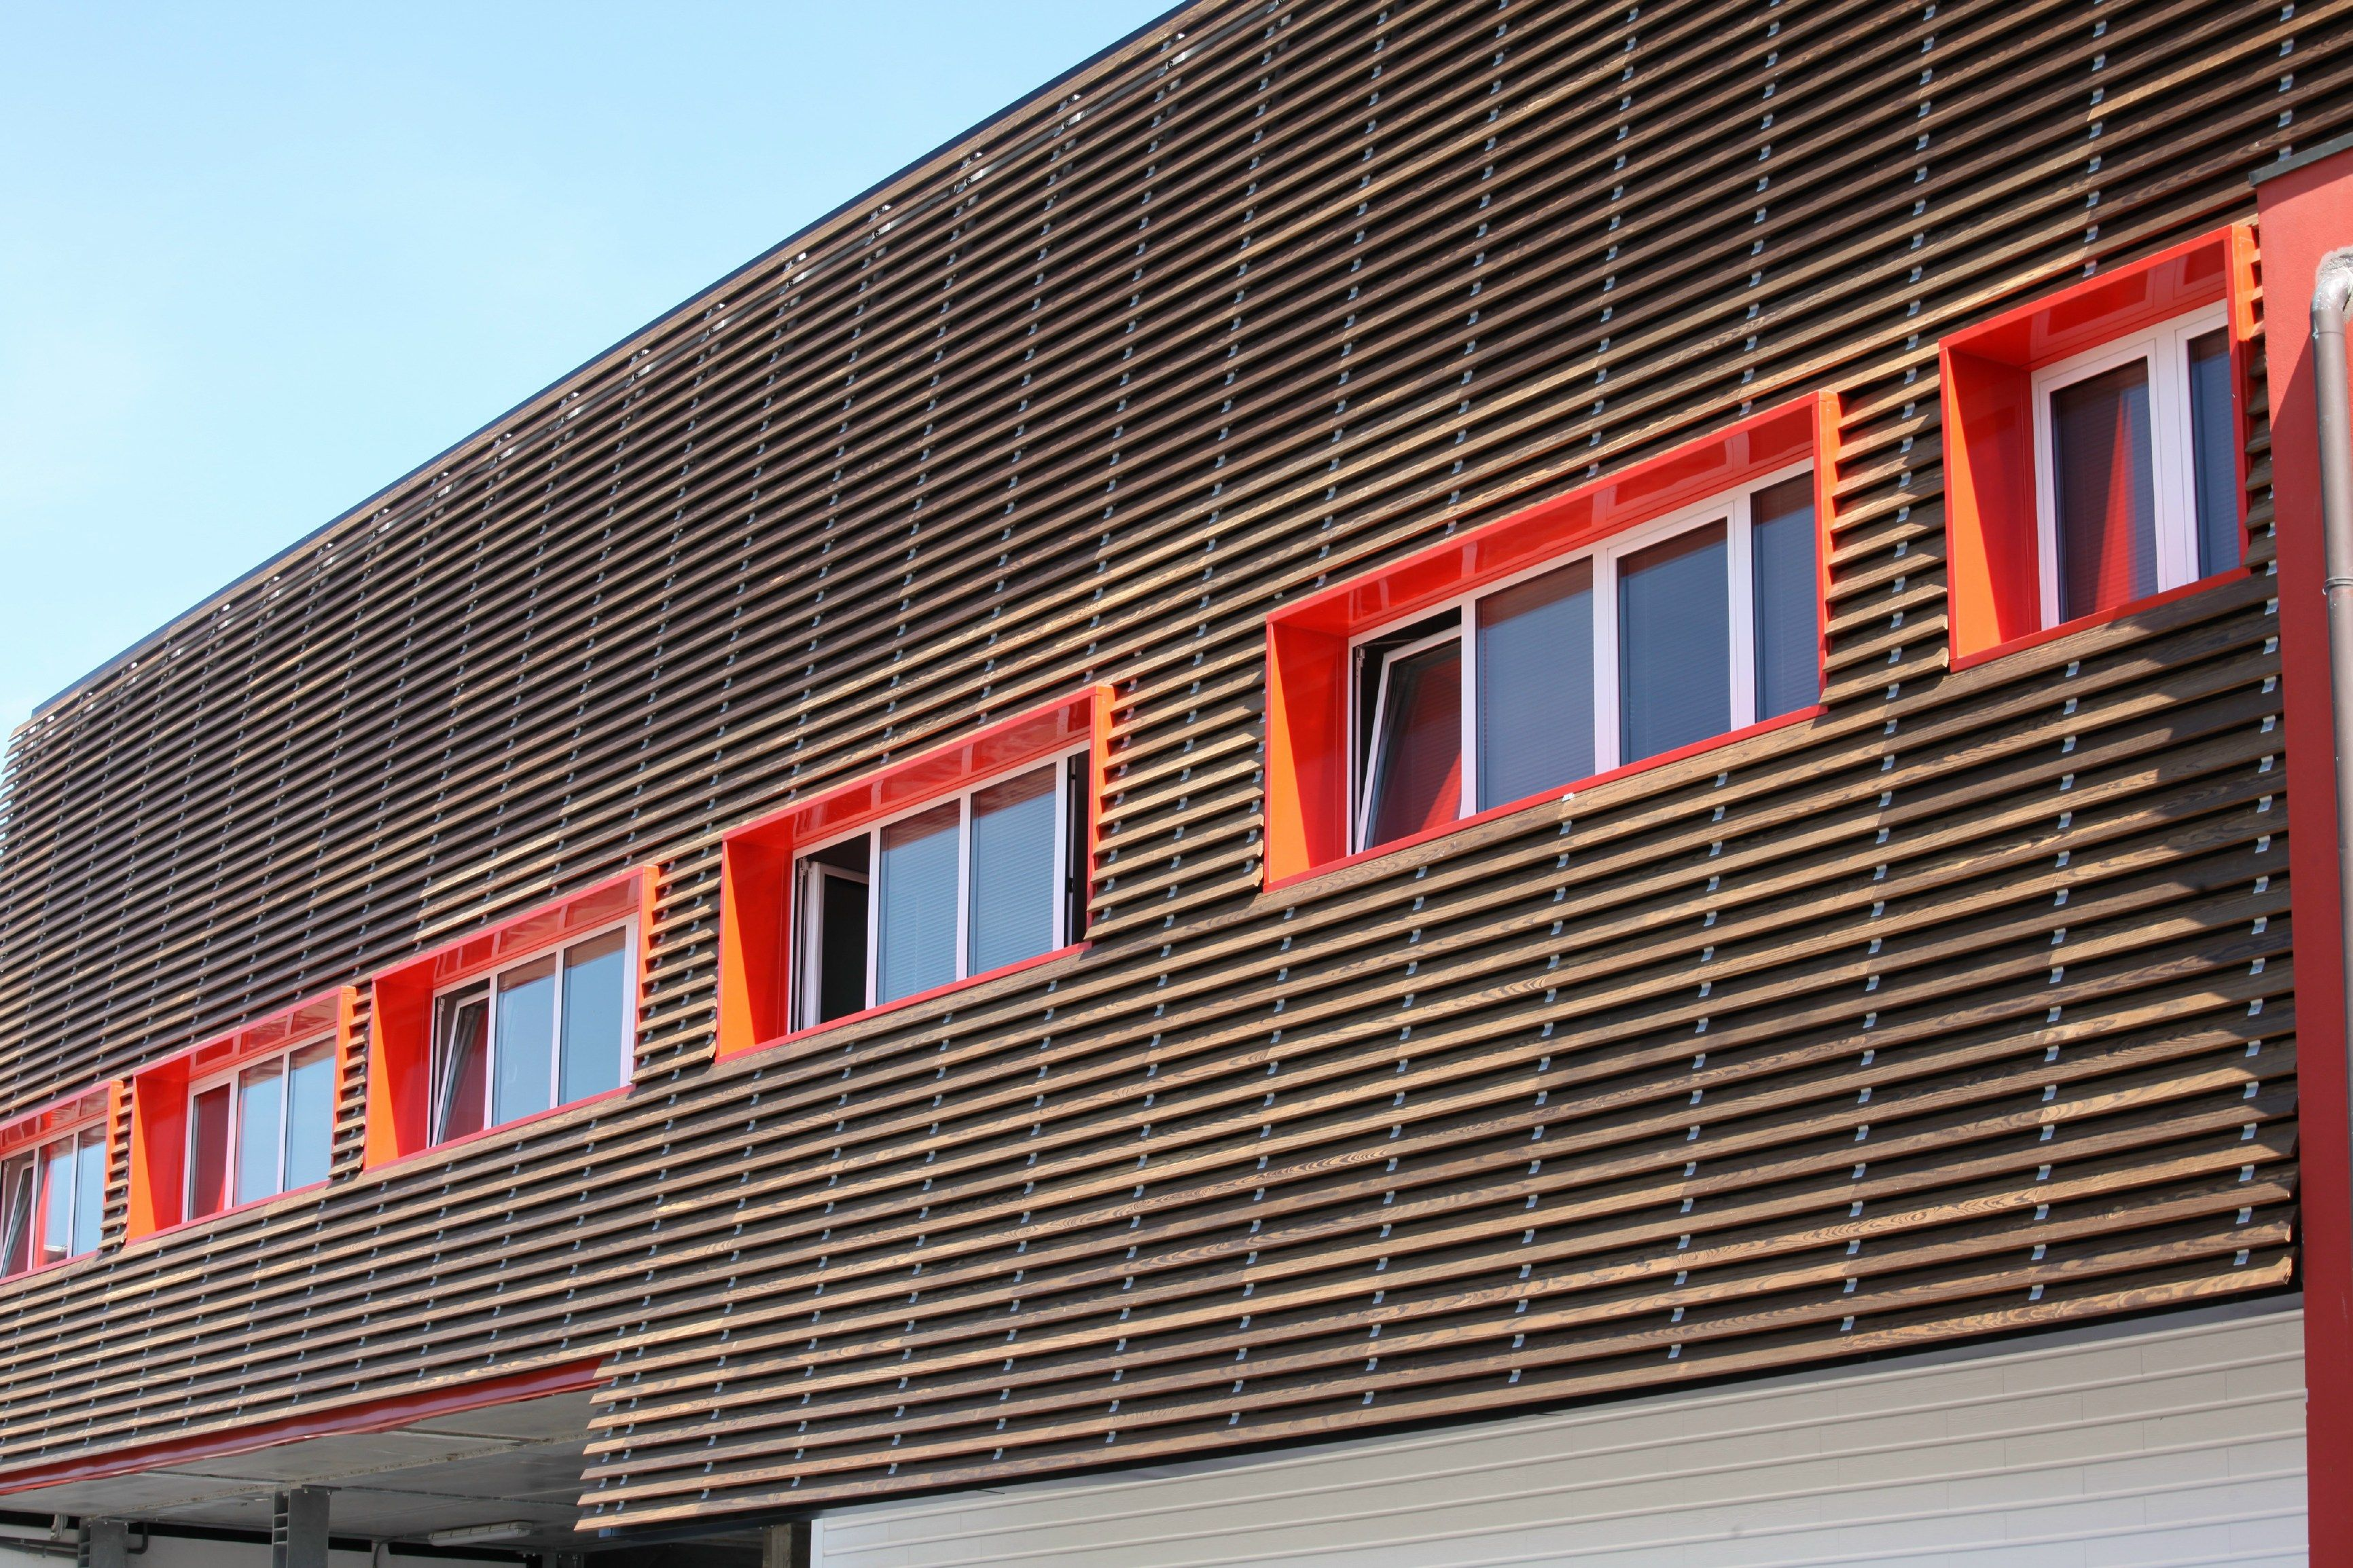 Wood Panel For Facade Solar Shading 4sun By Ravaioli Legnami Solar Shades Wood Paneling Facade